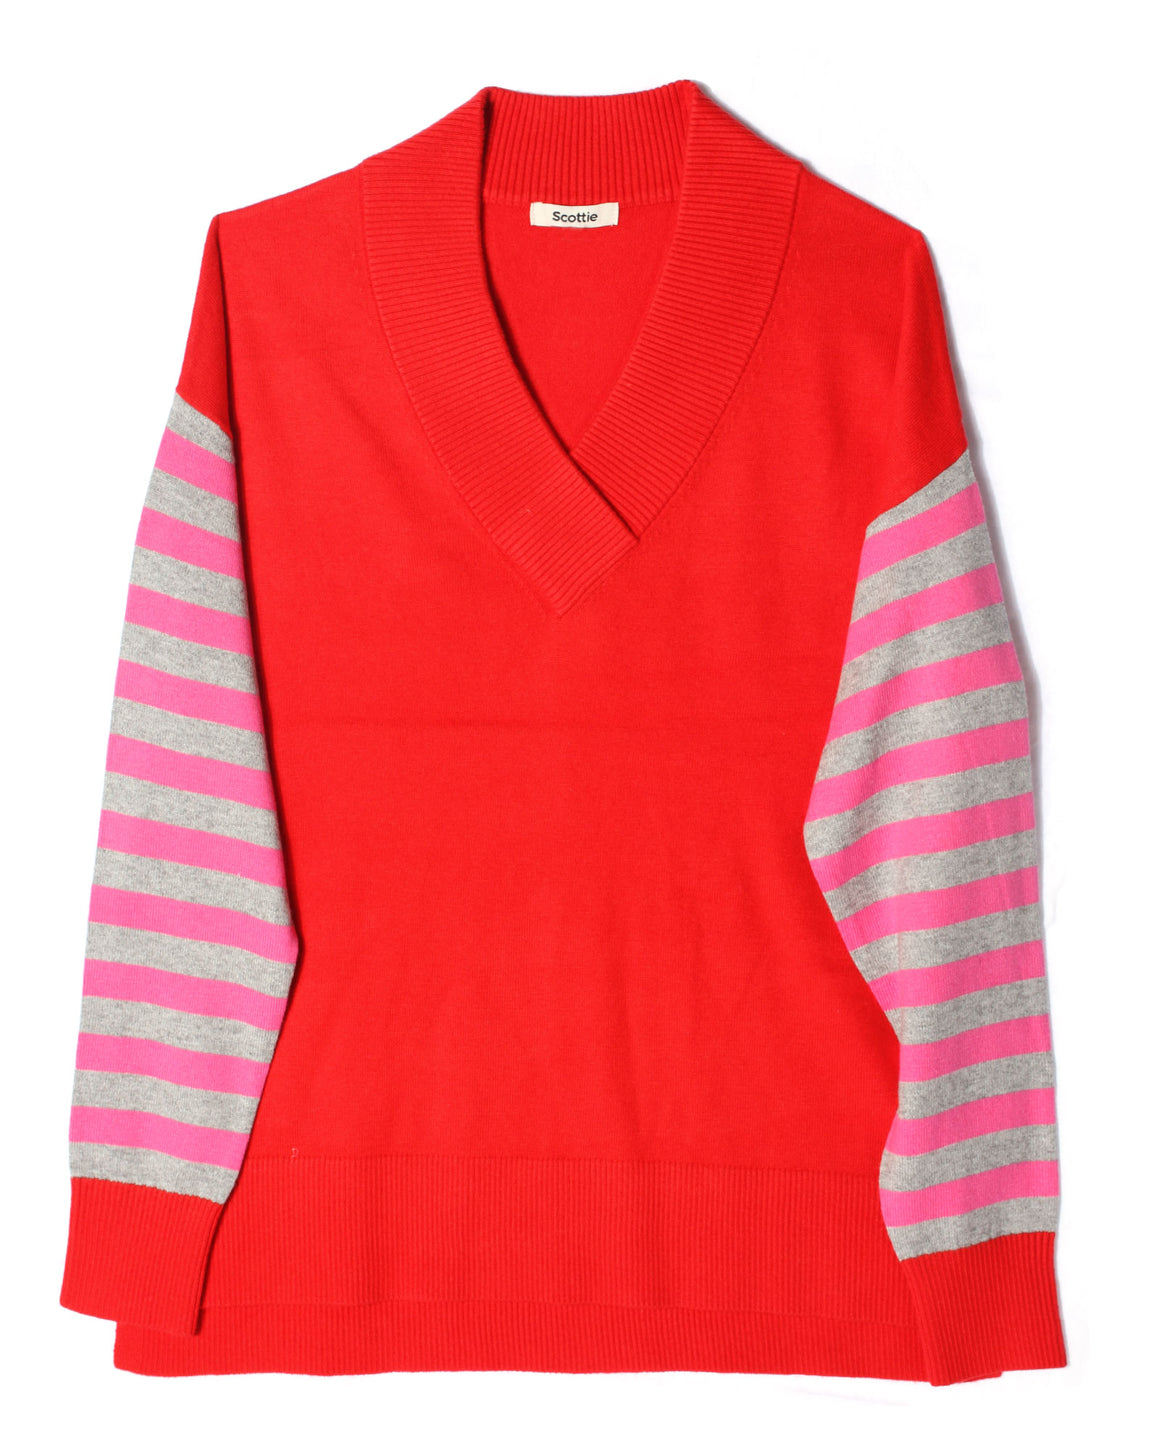 V-Neck Sweater Striped Sleeve - Red